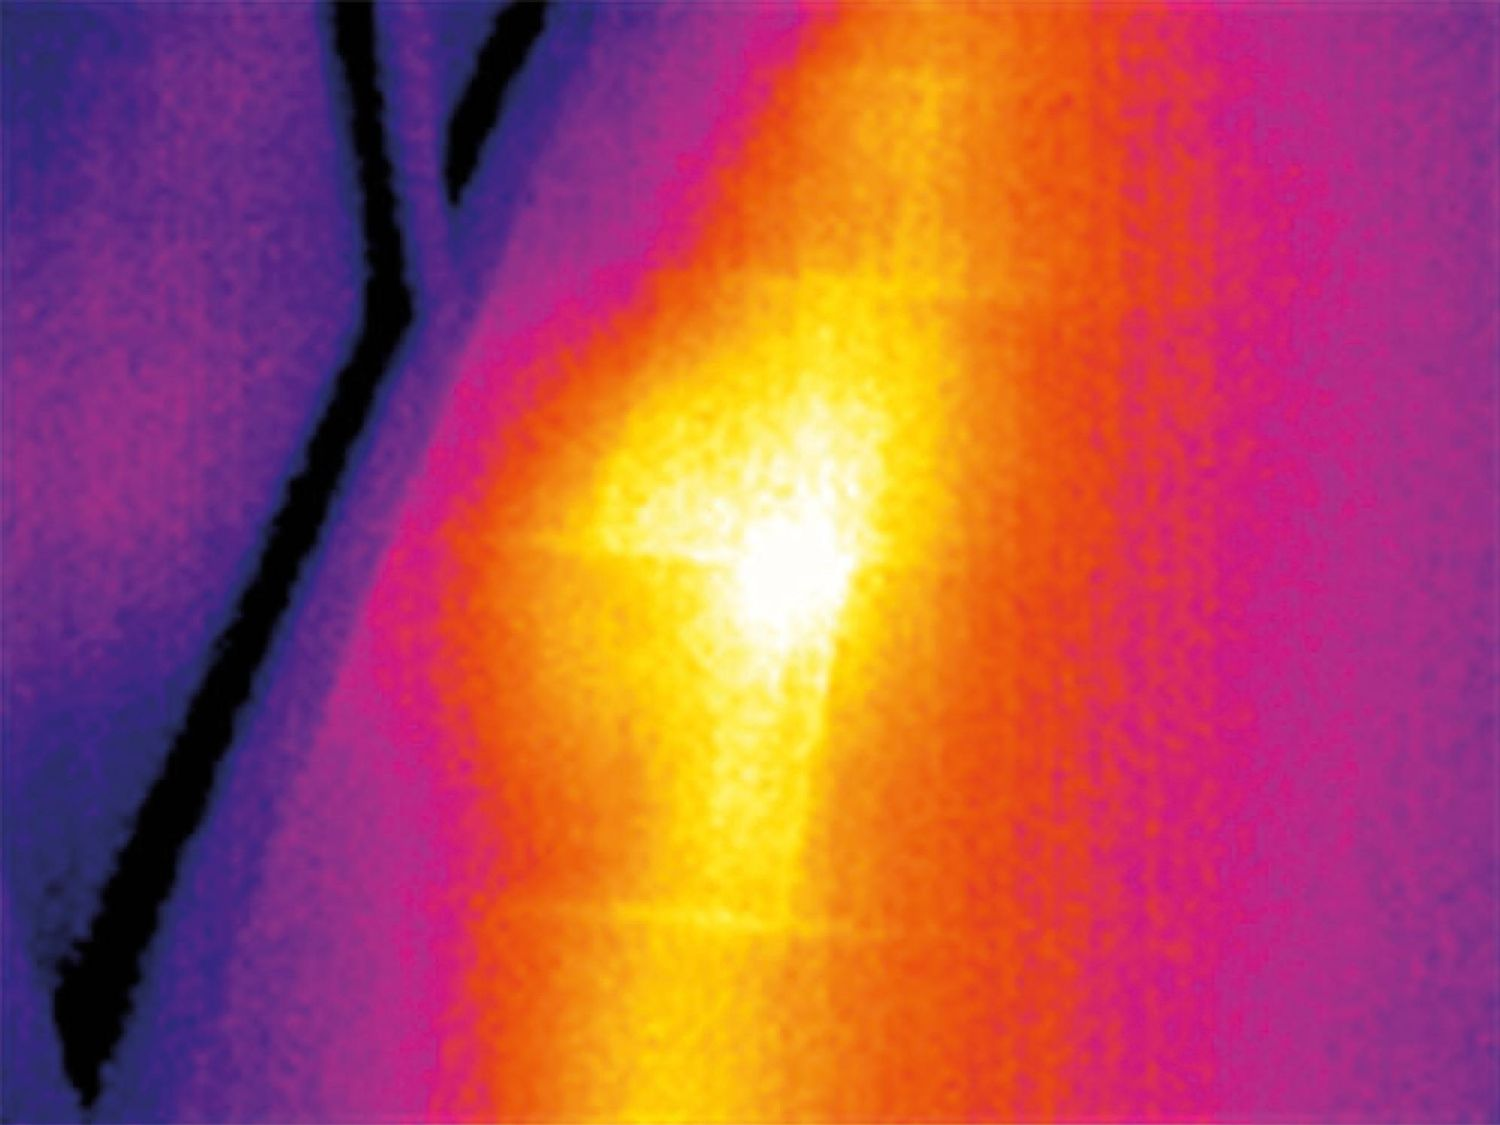 Thermal imager heating